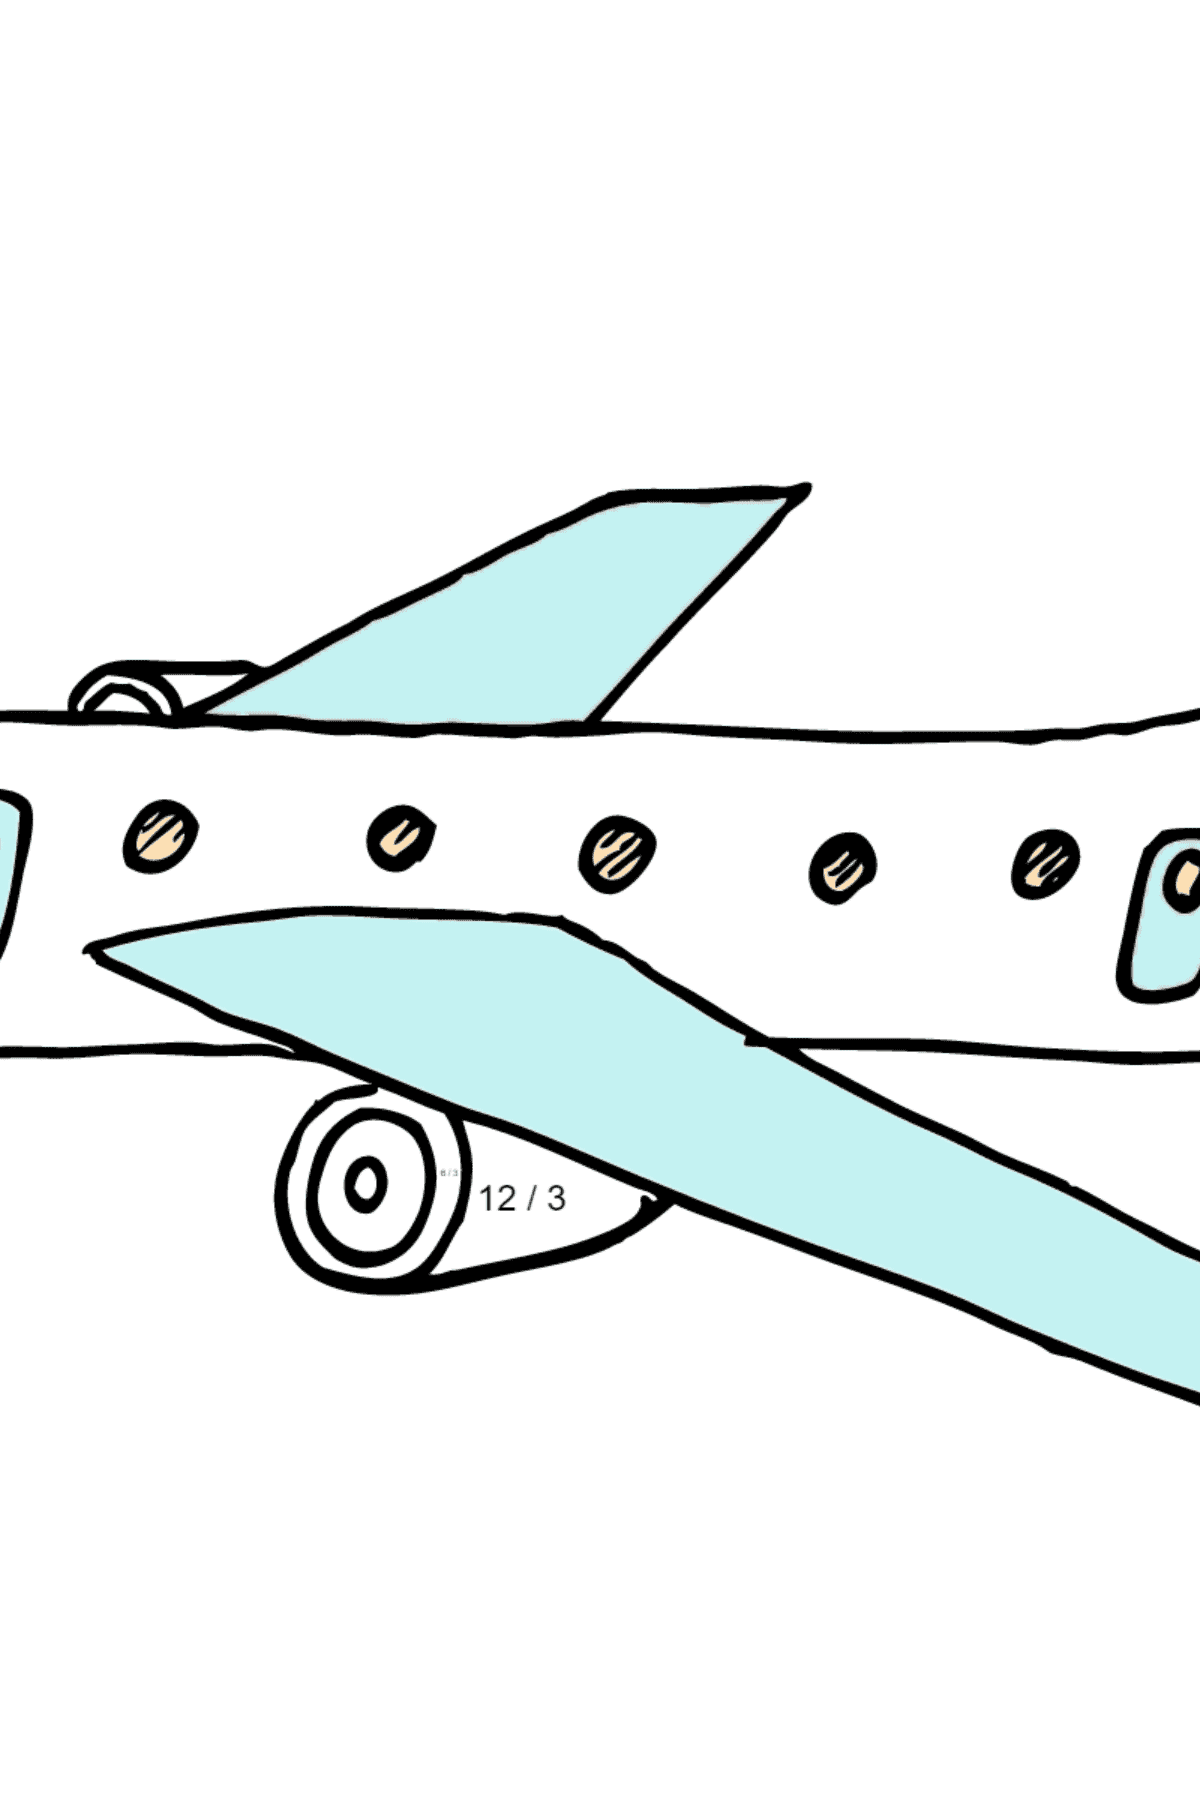 Coloring Page - A Commercial Jet - Math Coloring - Division for Kids